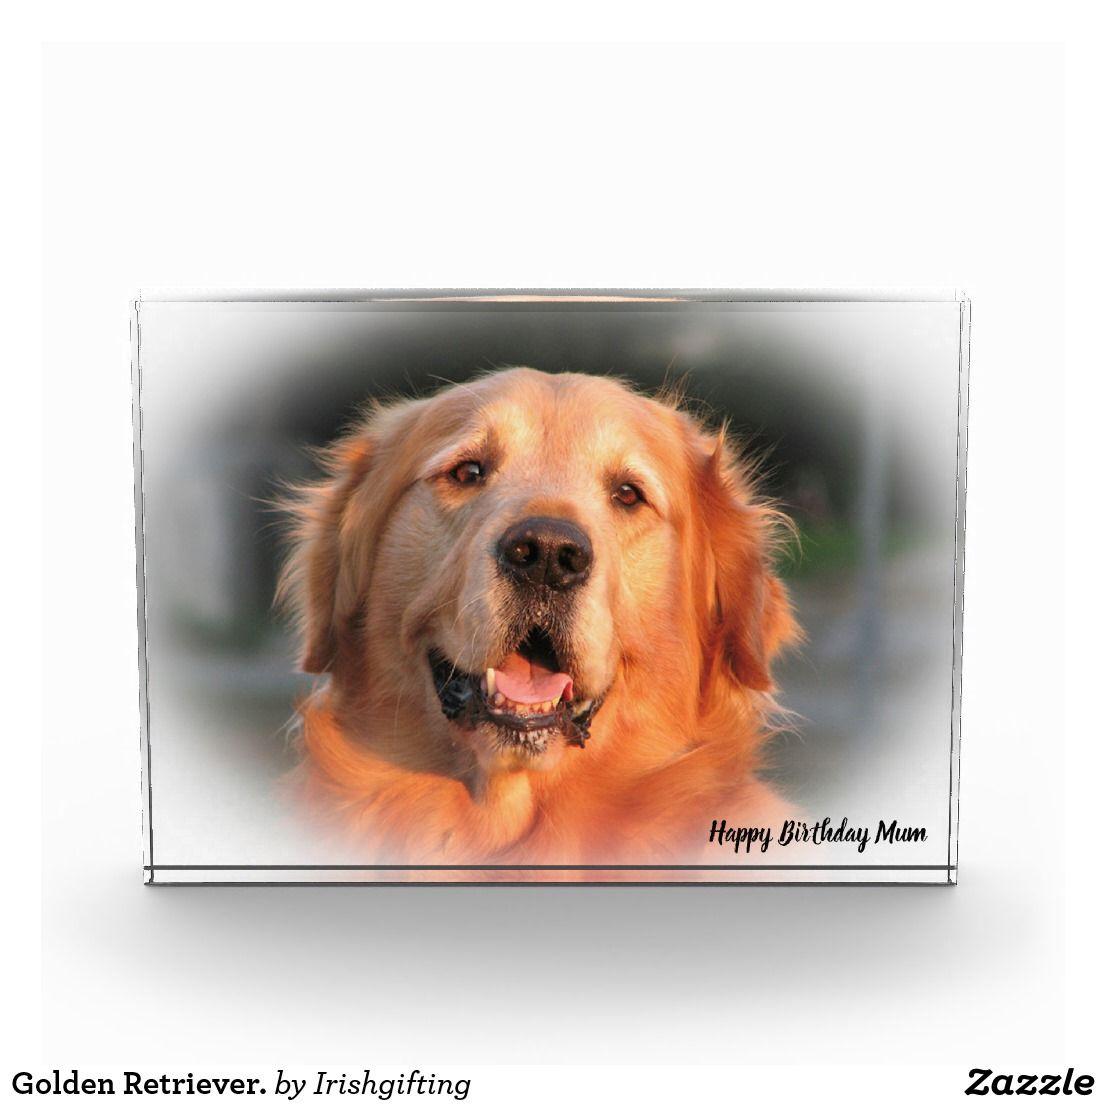 Golden Retriever Photo Block Zazzle Co Uk Golden Retriever My Pet Dog Dog Presents